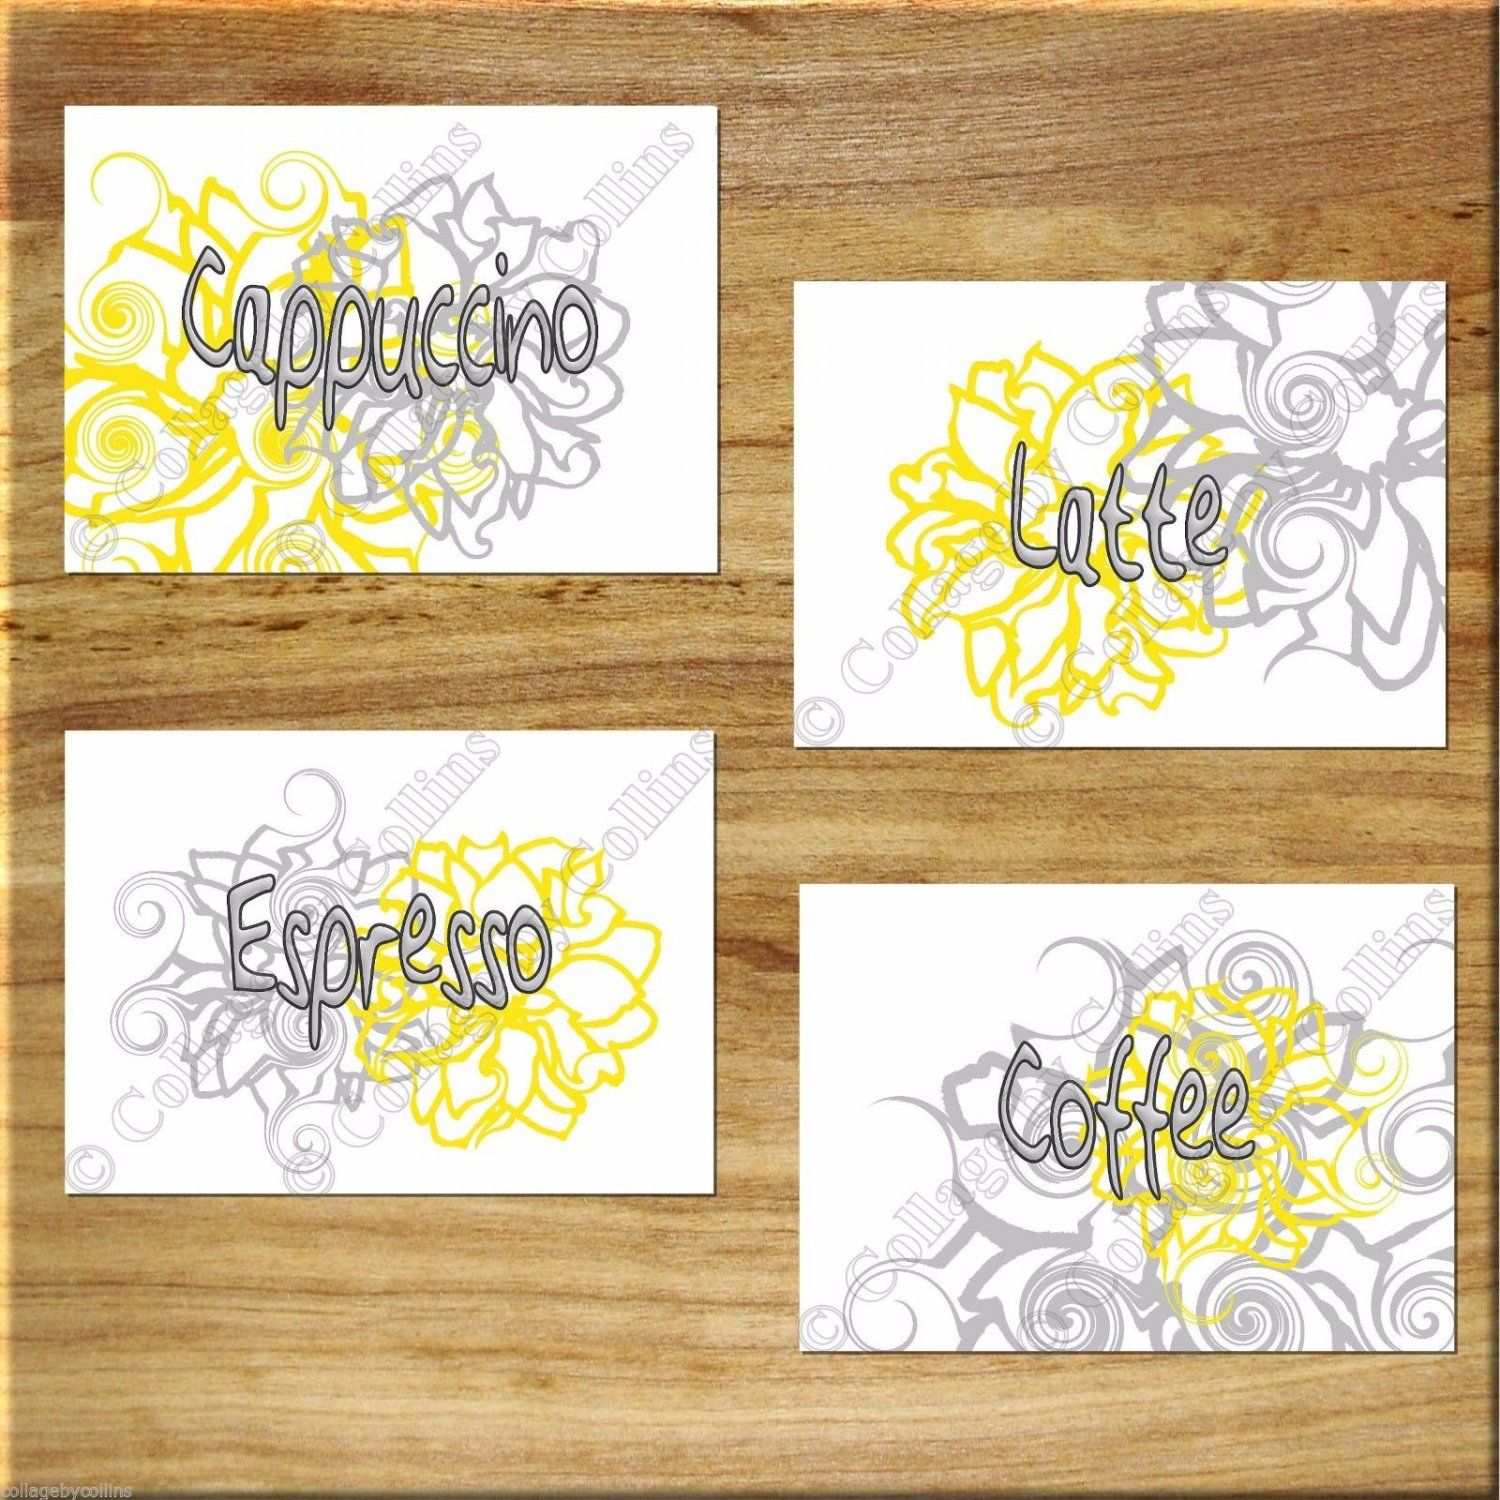 YELLOW+GRAY+Wall+Words+Art+Kitchen+Cafe+Flower+Floral+Prints+Decor+ ...